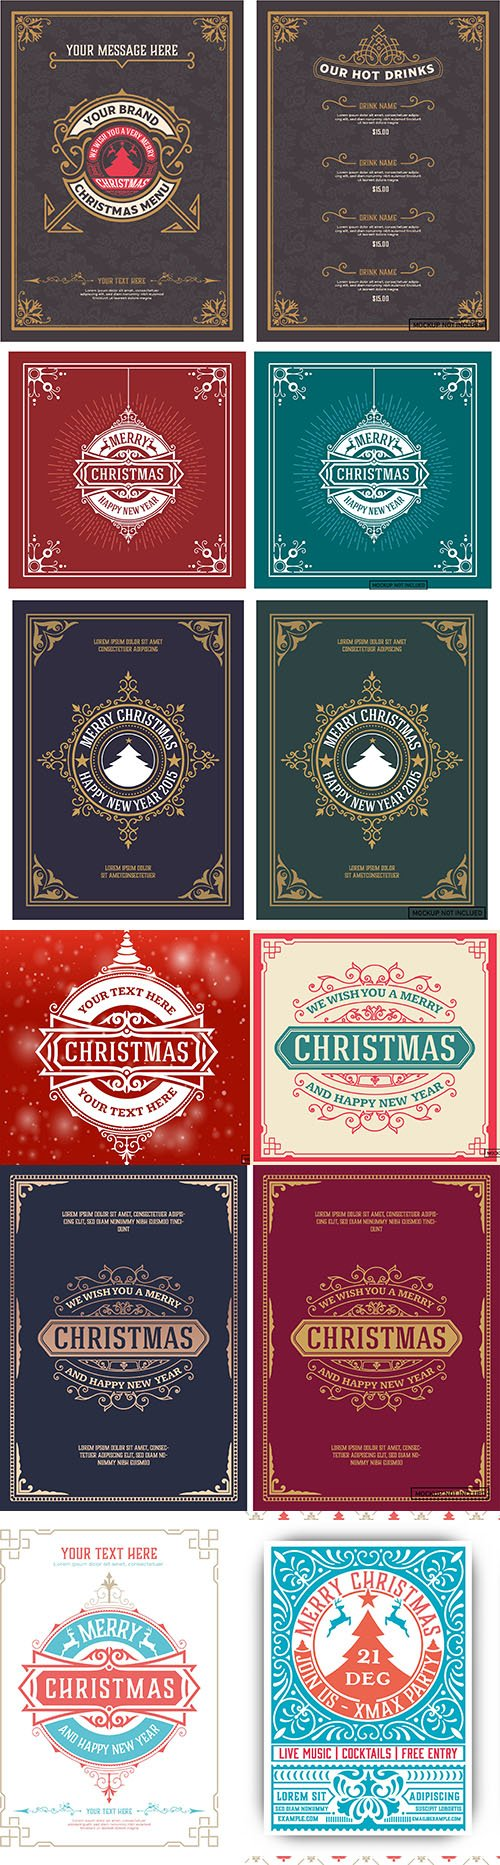 Christmas party flyer retro printing and decoration postcard